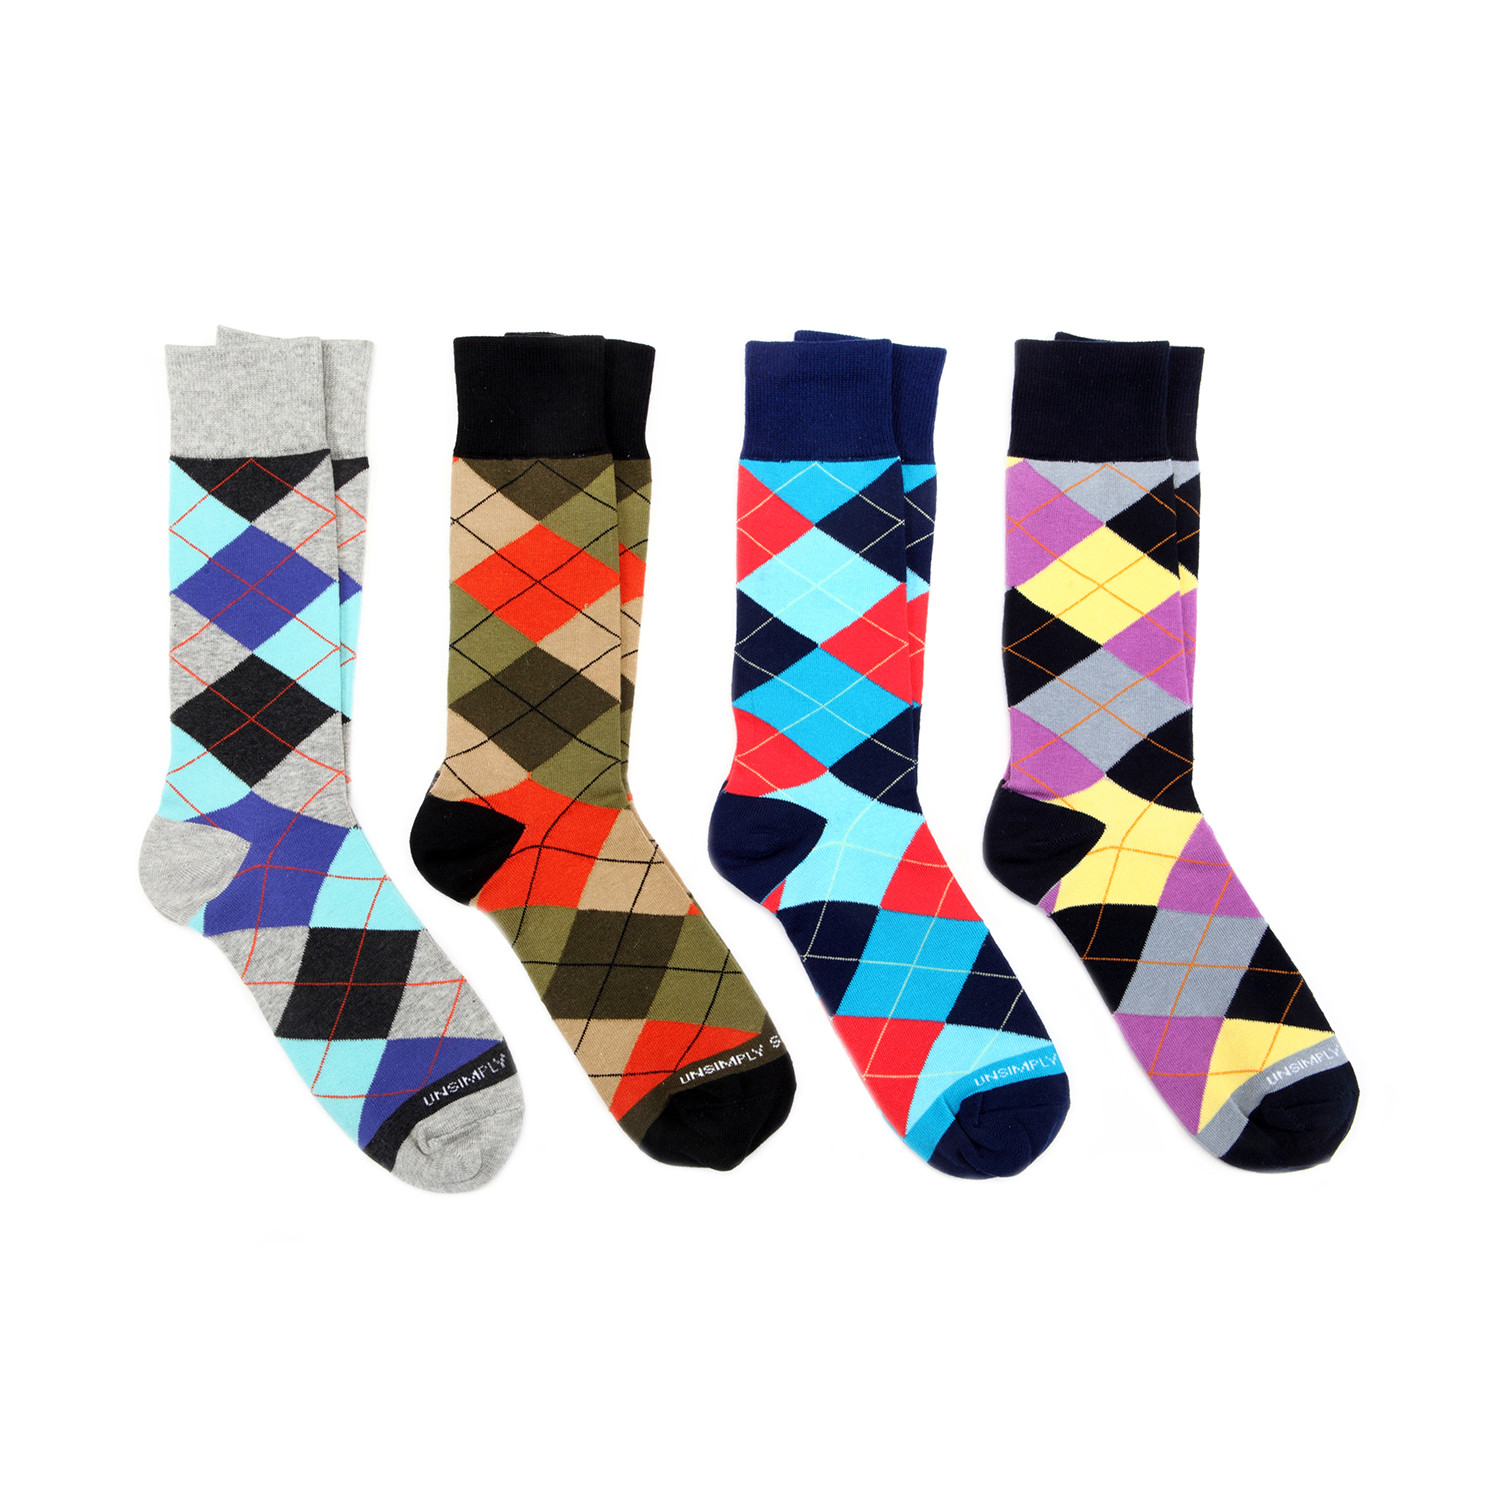 Dress socks argyle mix ii pack of 4 unsimply stitched touch